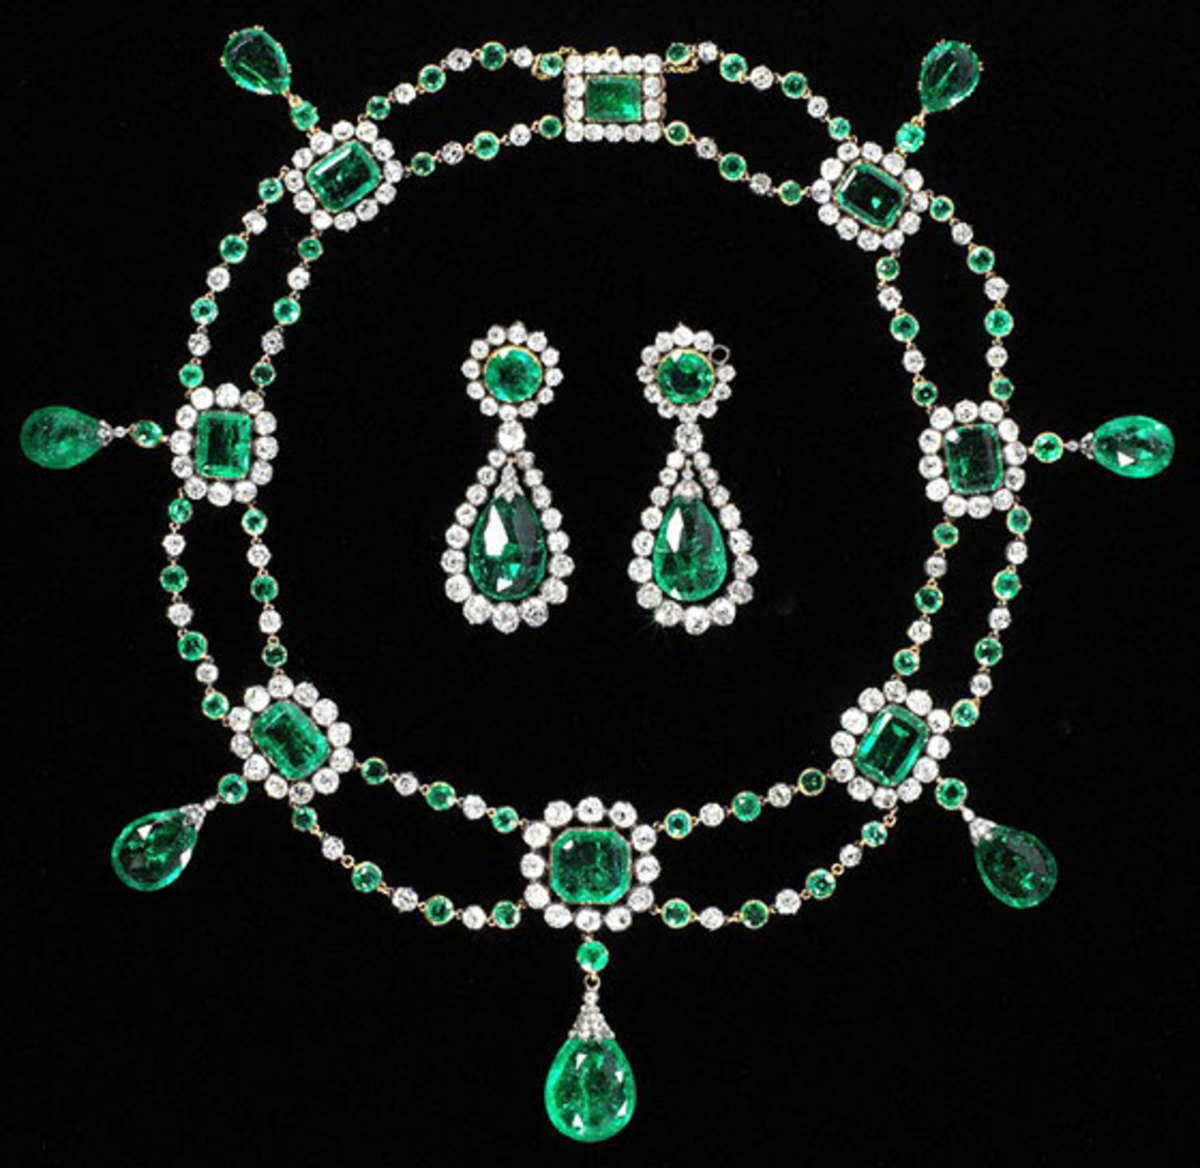 Emerald and diamond jewelry suite, 1806 France